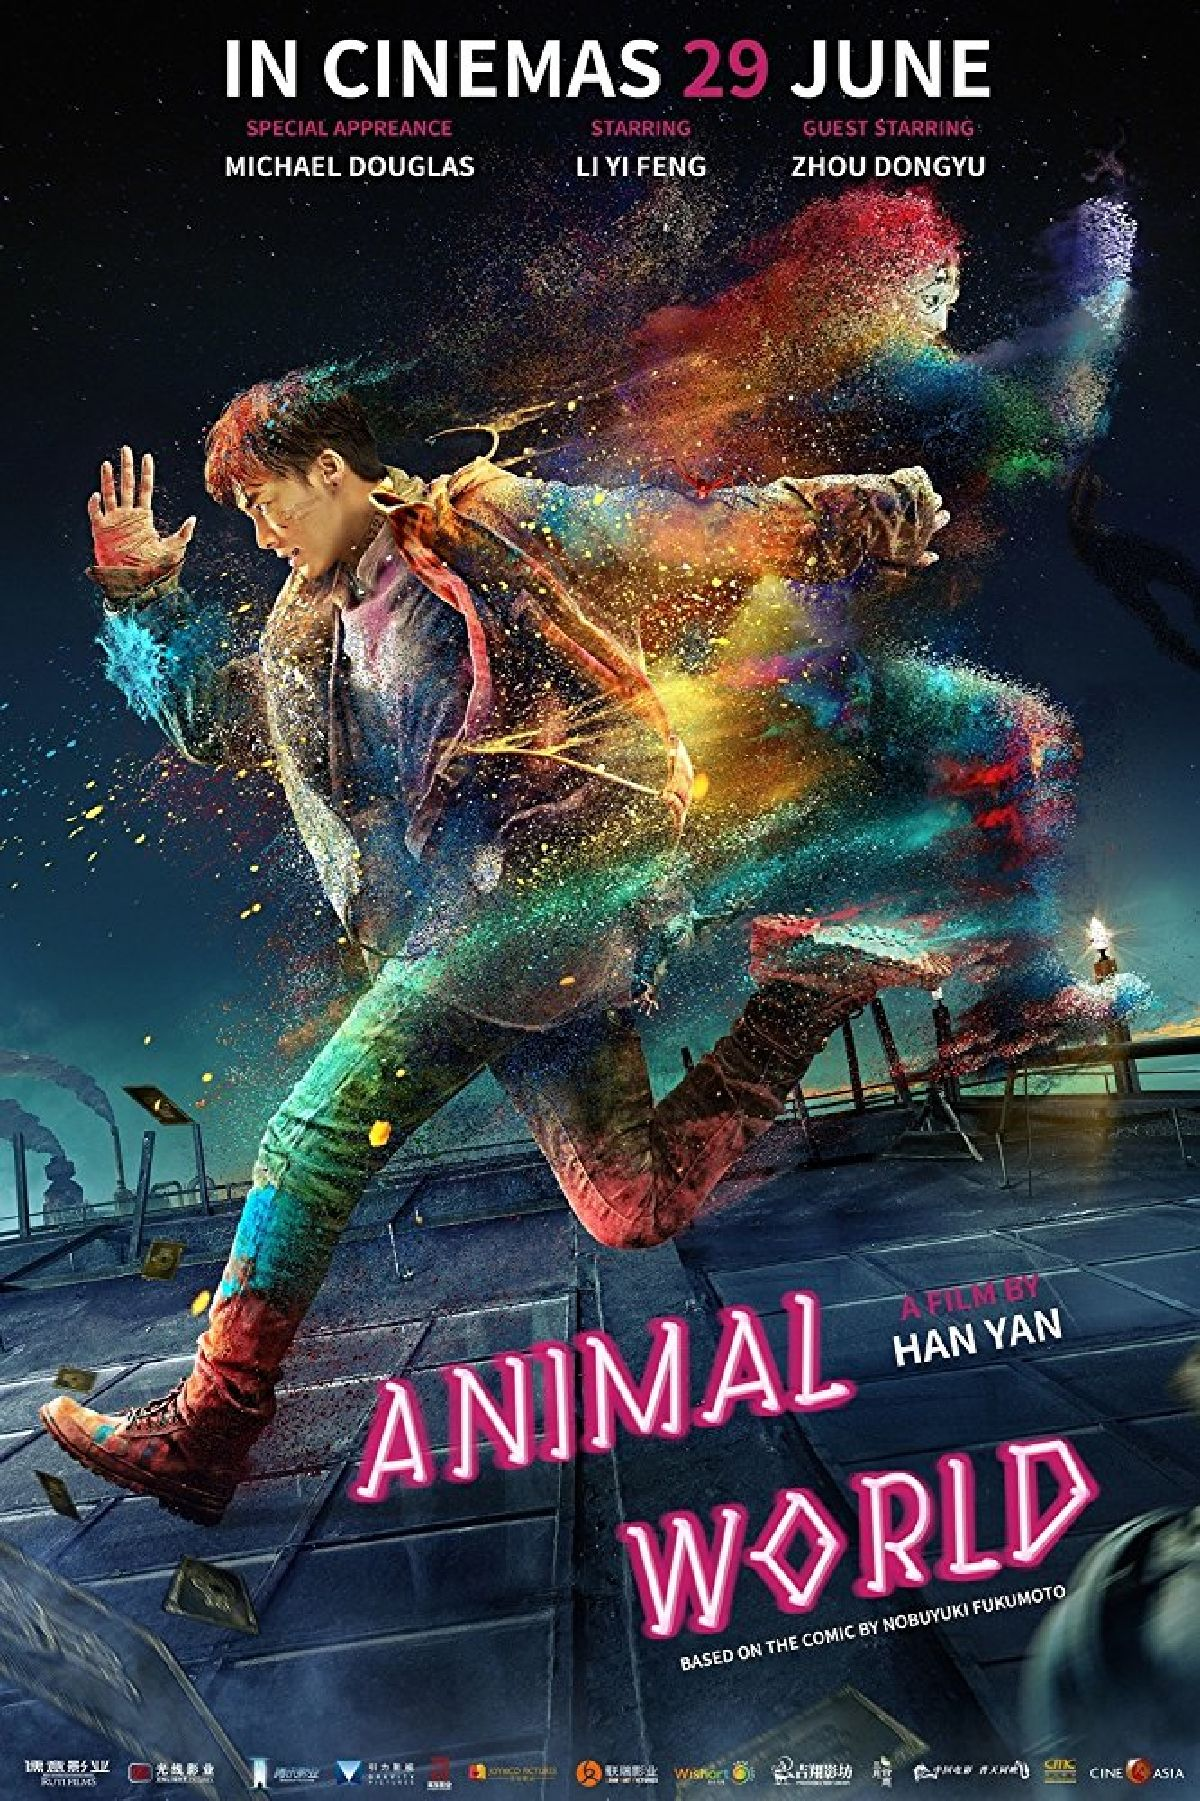 'Animal World' movie poster